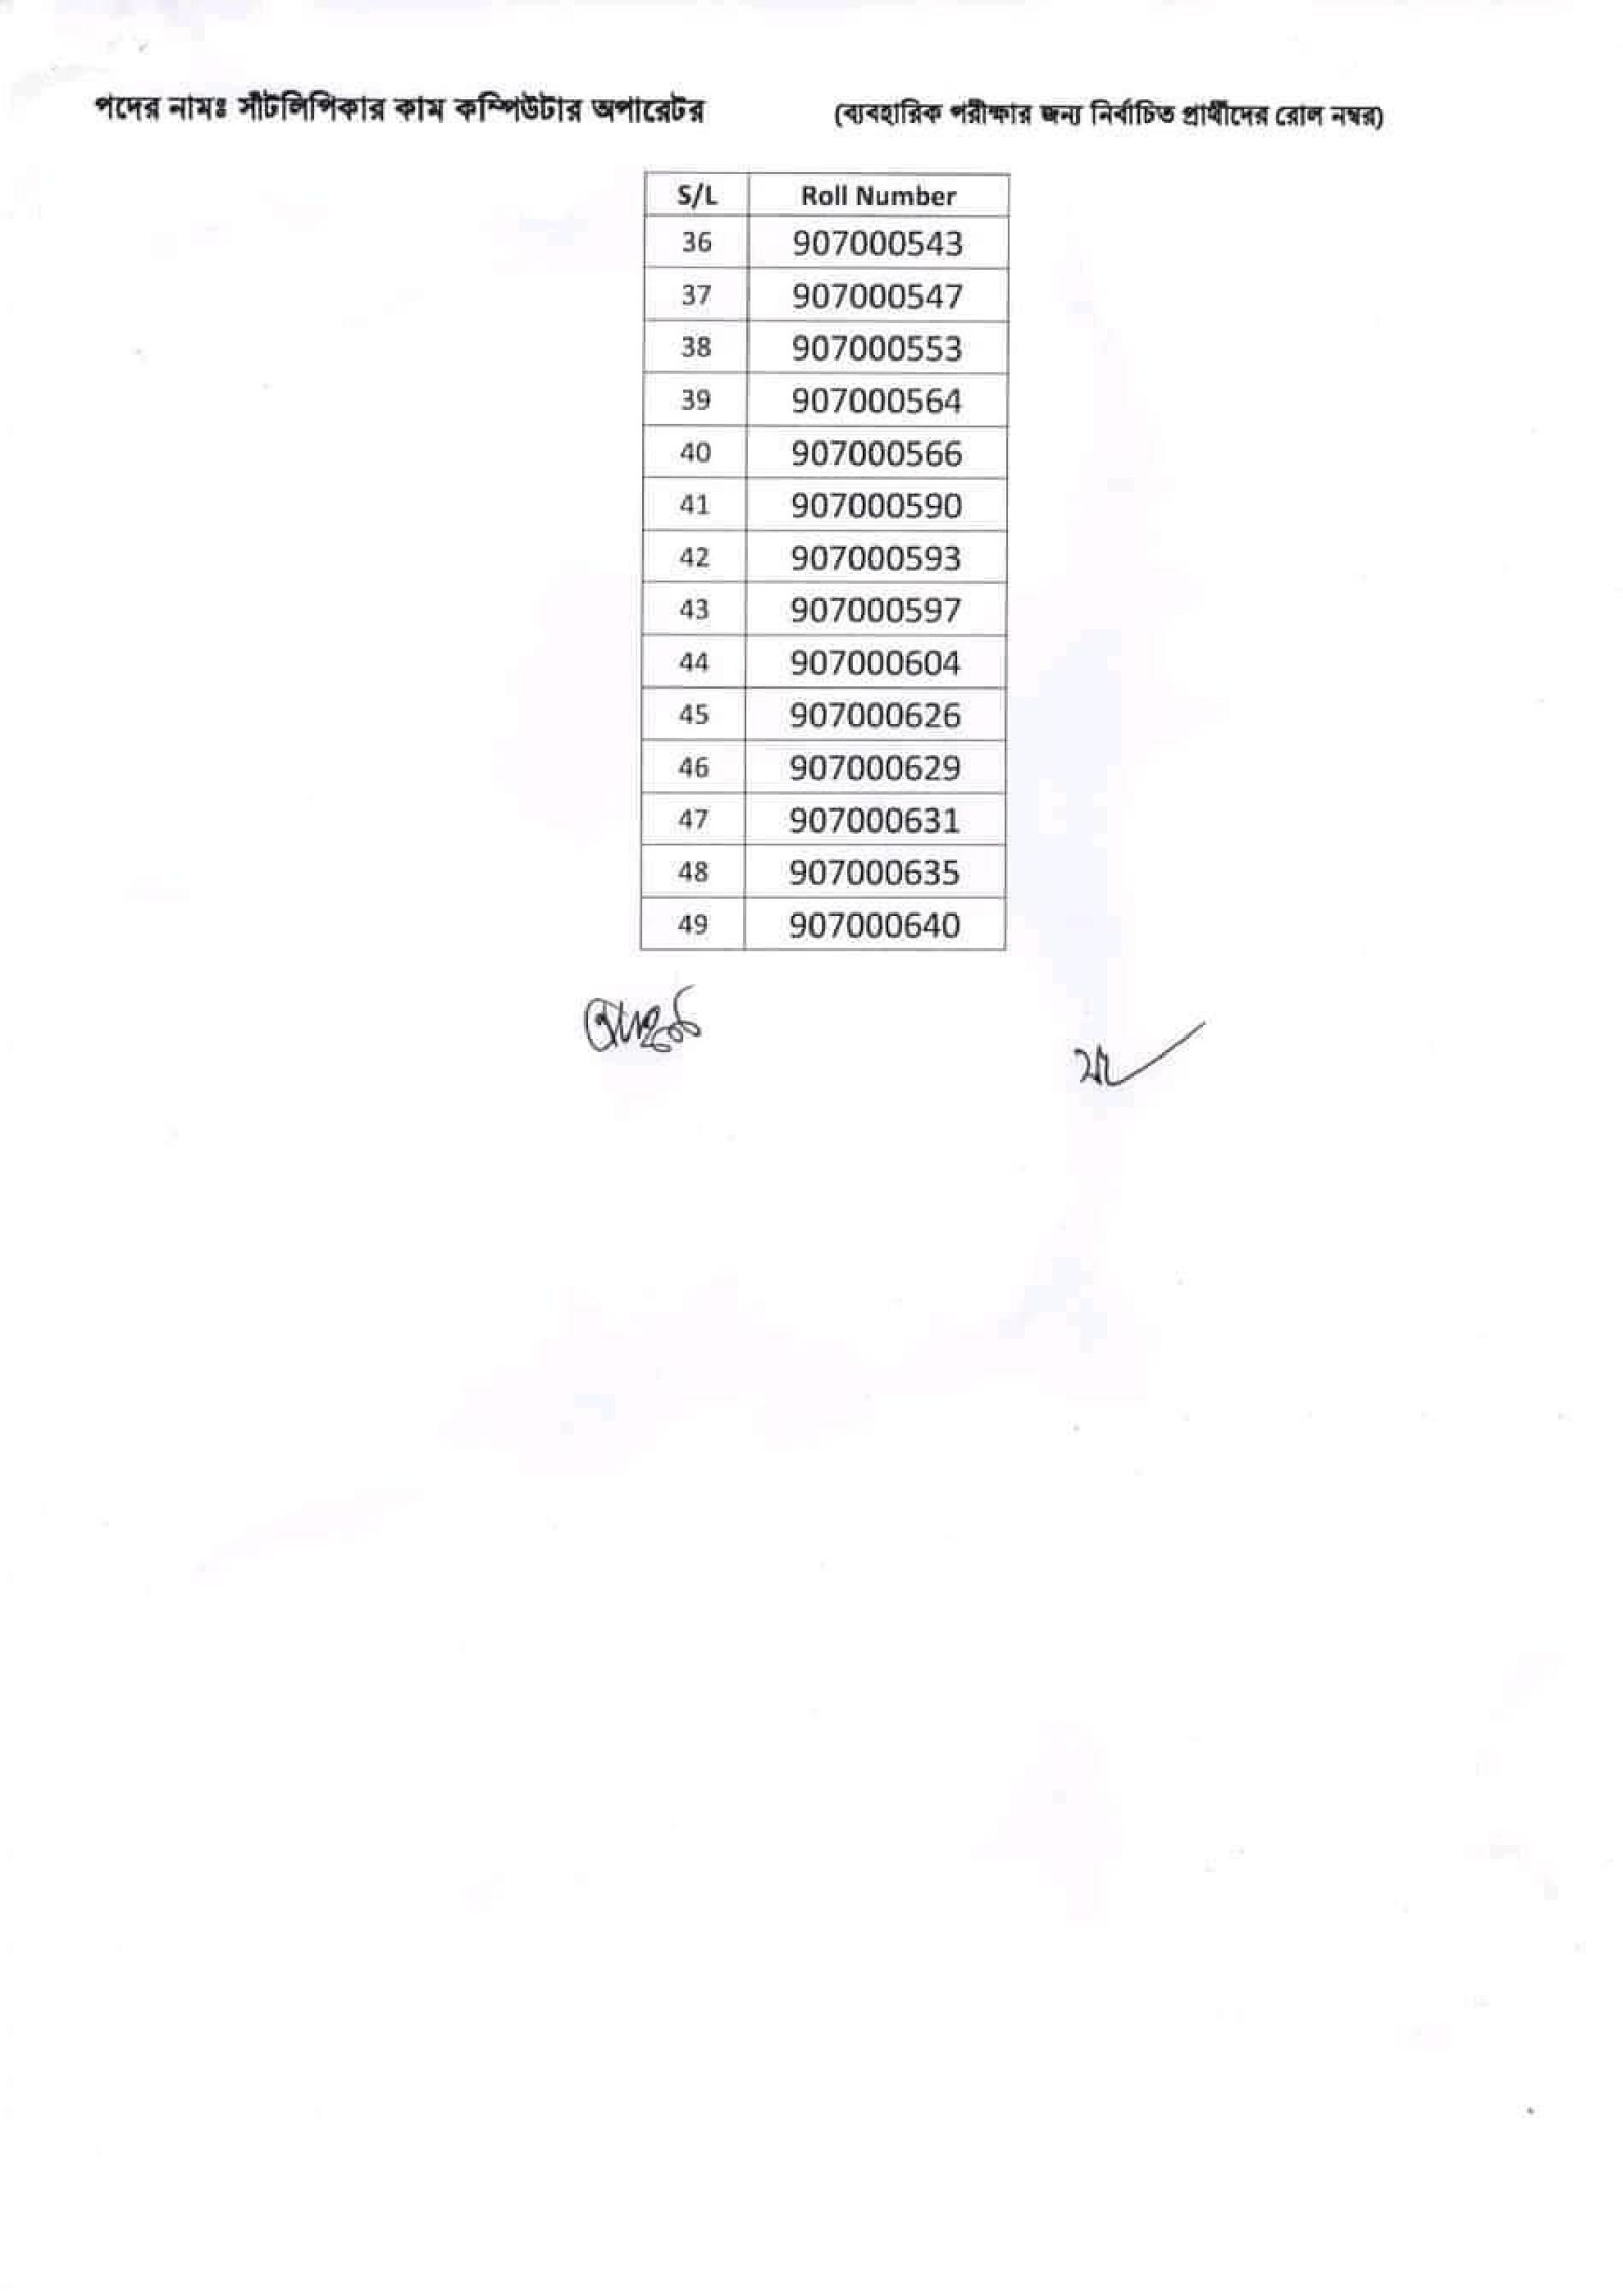 dss-result-page-003